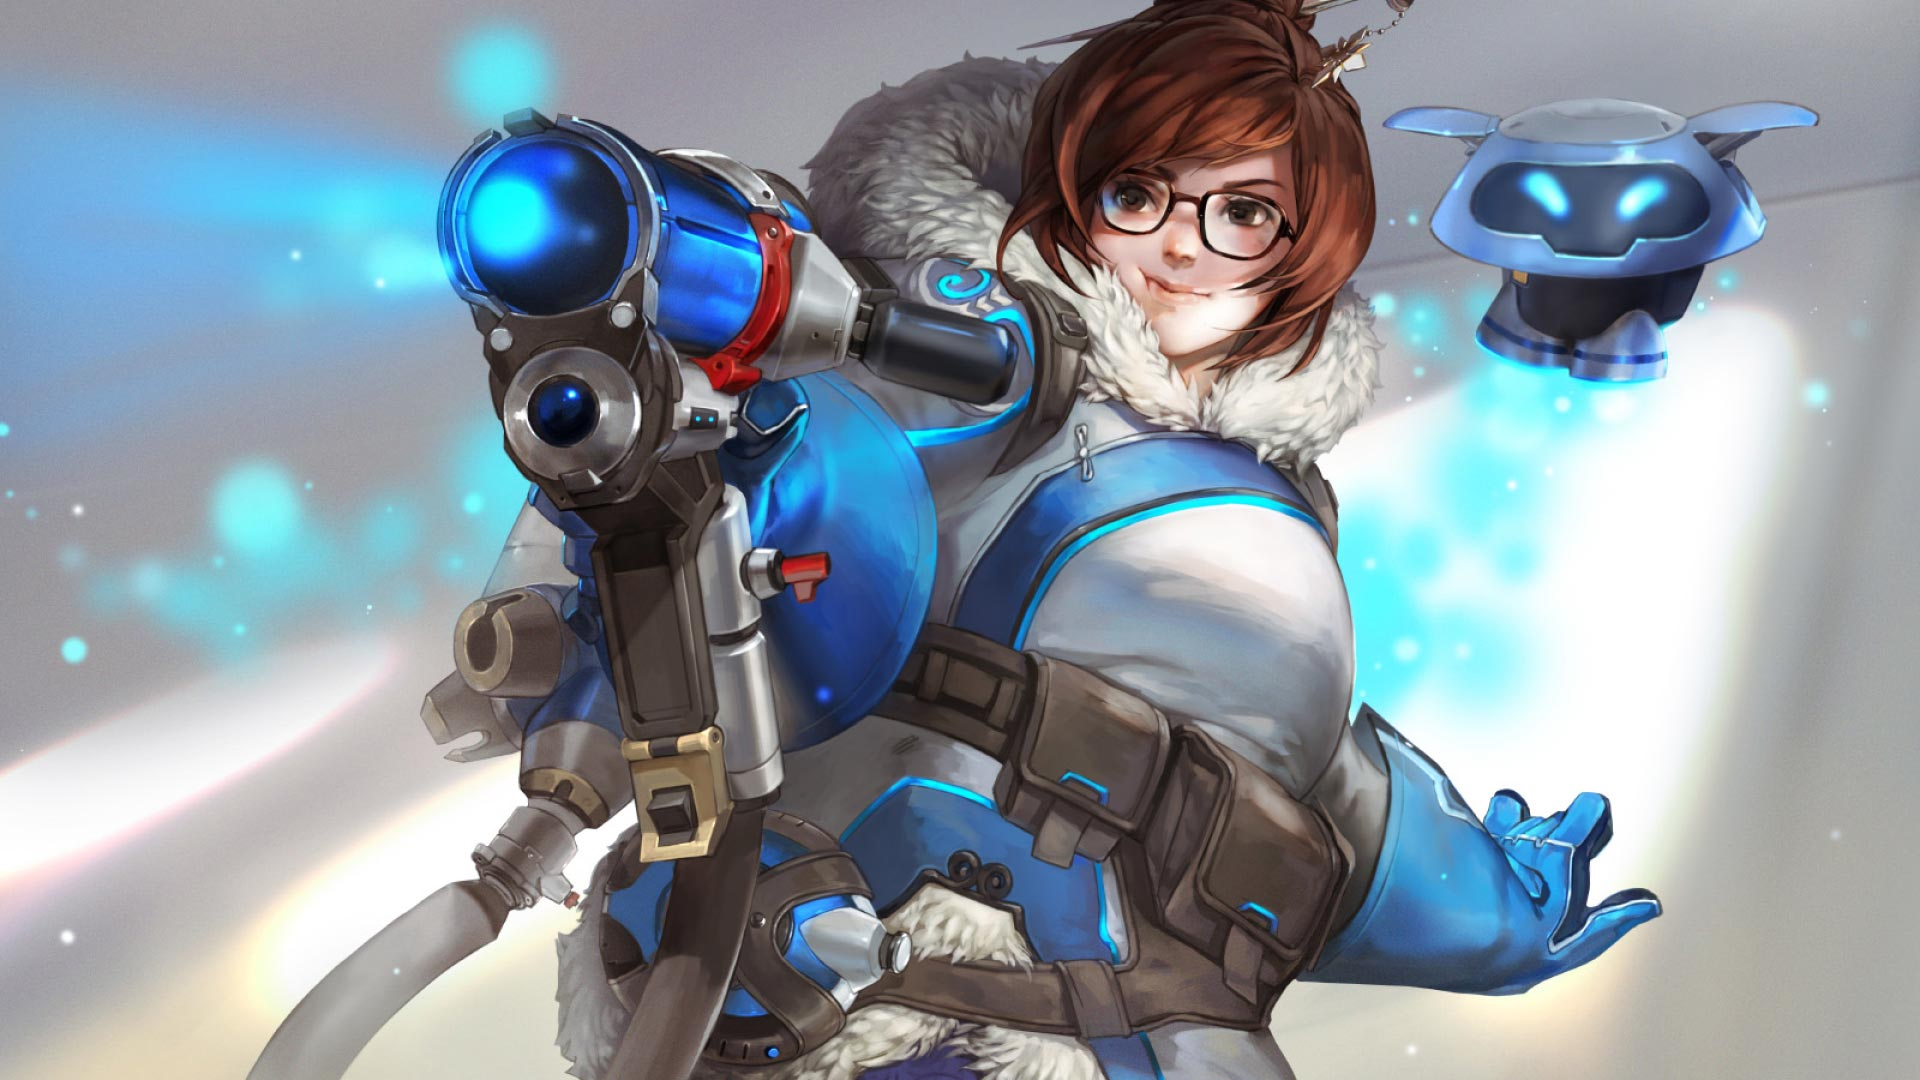 Overwatch mei theme for windows 10 8 7 - In Action Freezing Things With The Endothermic Blaster And Creating Blocks Of Ice In This Adorable Theme For The Hero